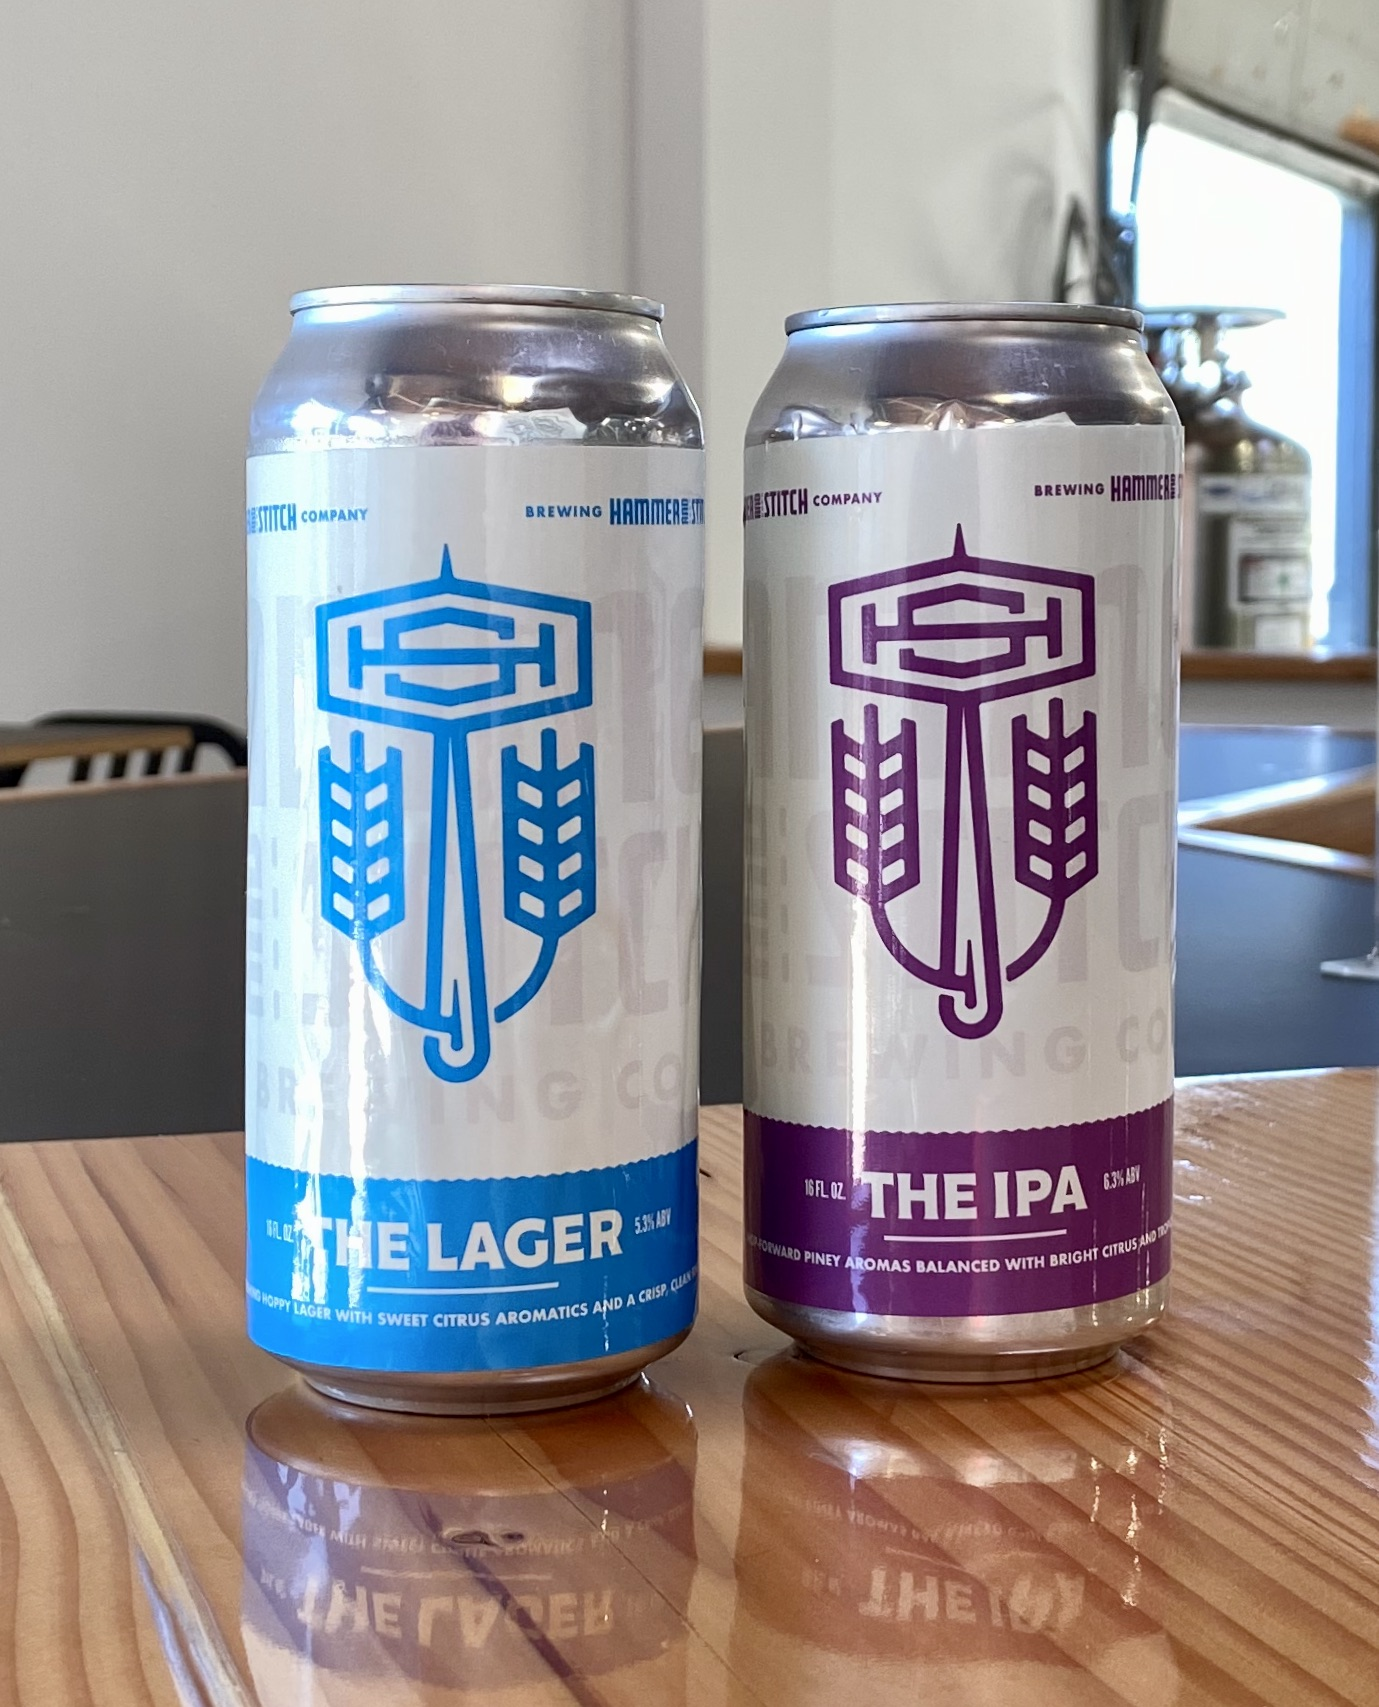 Tallboy, 16oz cans will be forthcoming for The Lager and The IPA at Hammer & Stitch Brewing. The goal is to have these packaged by late October.